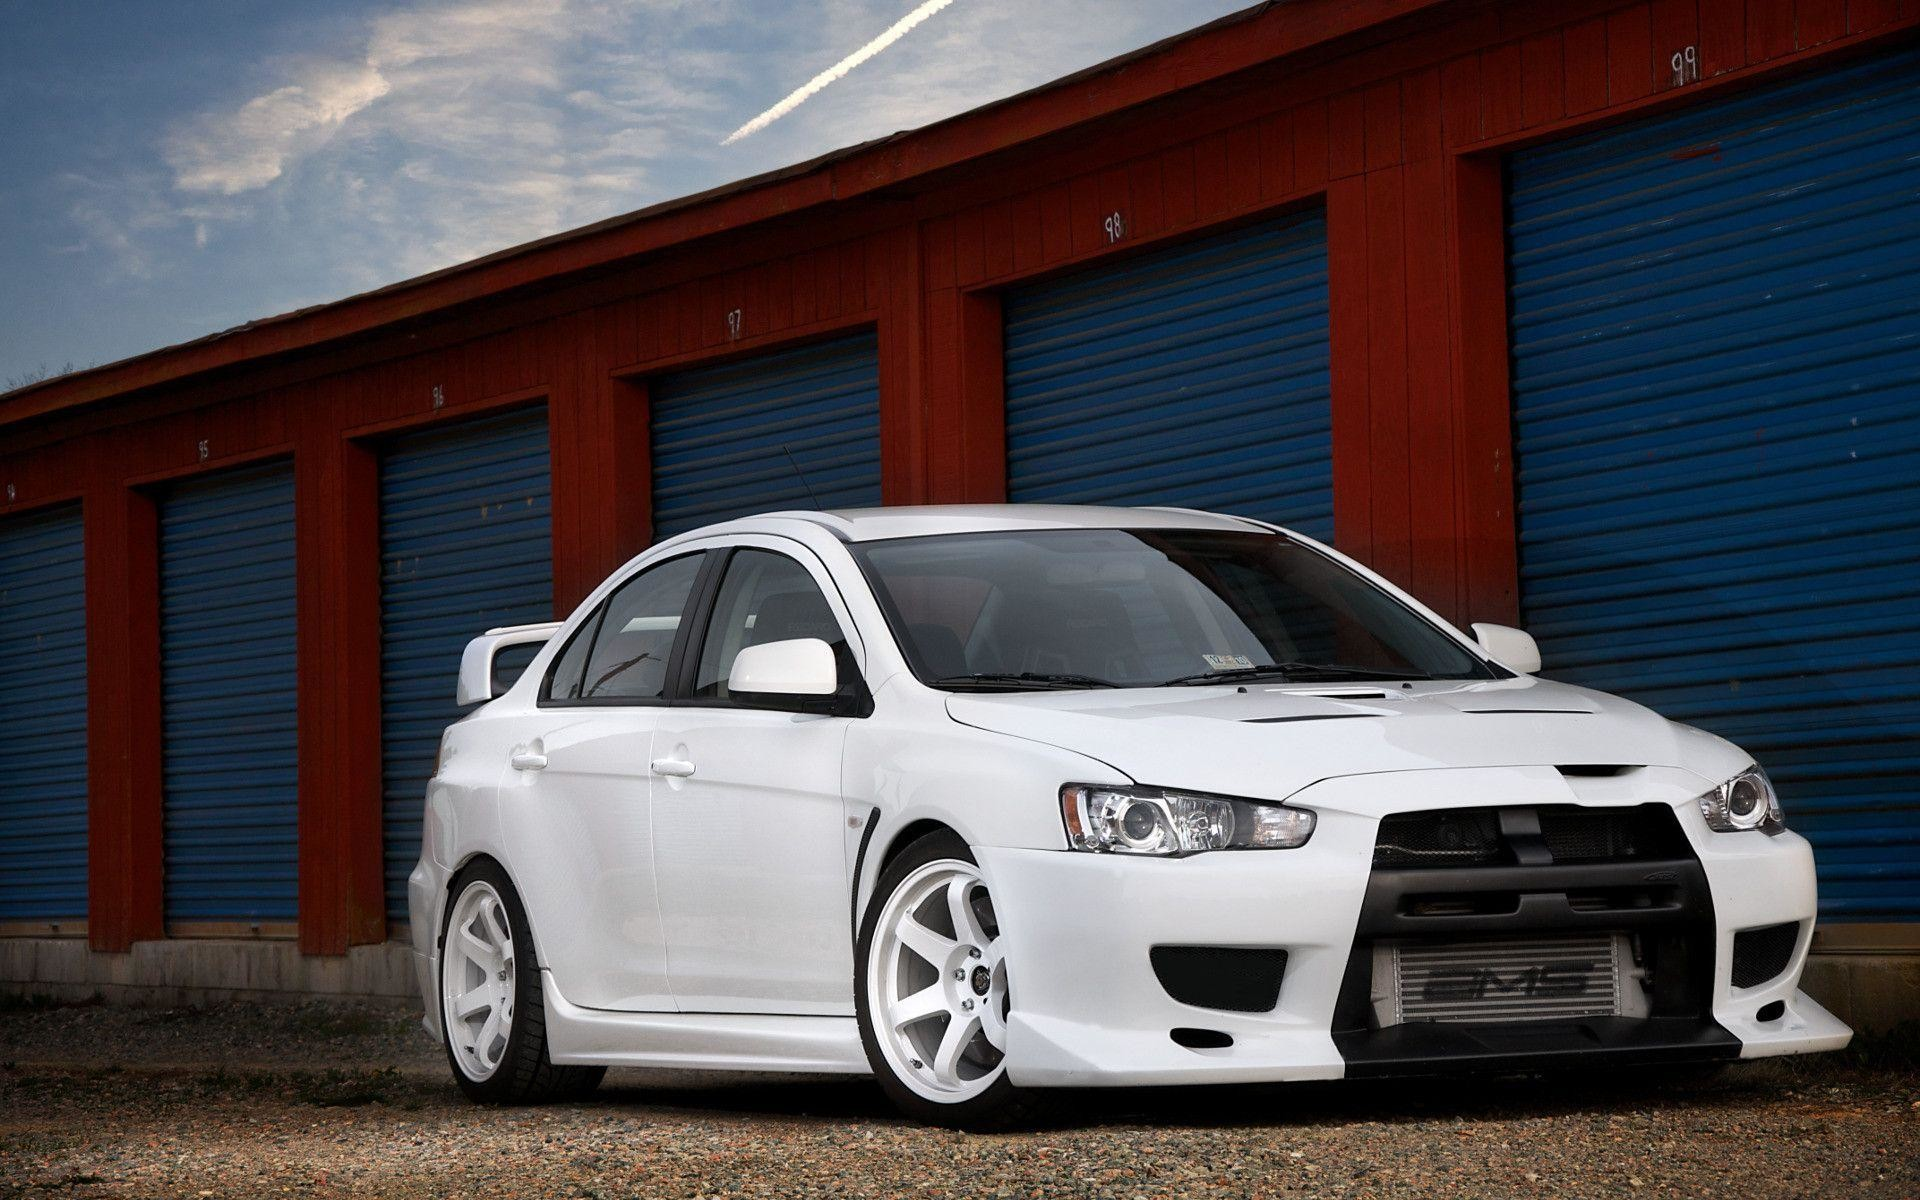 1920x1200 Mitsubishi Lancer Evolution Wallpapers - Full HD wallpaper search